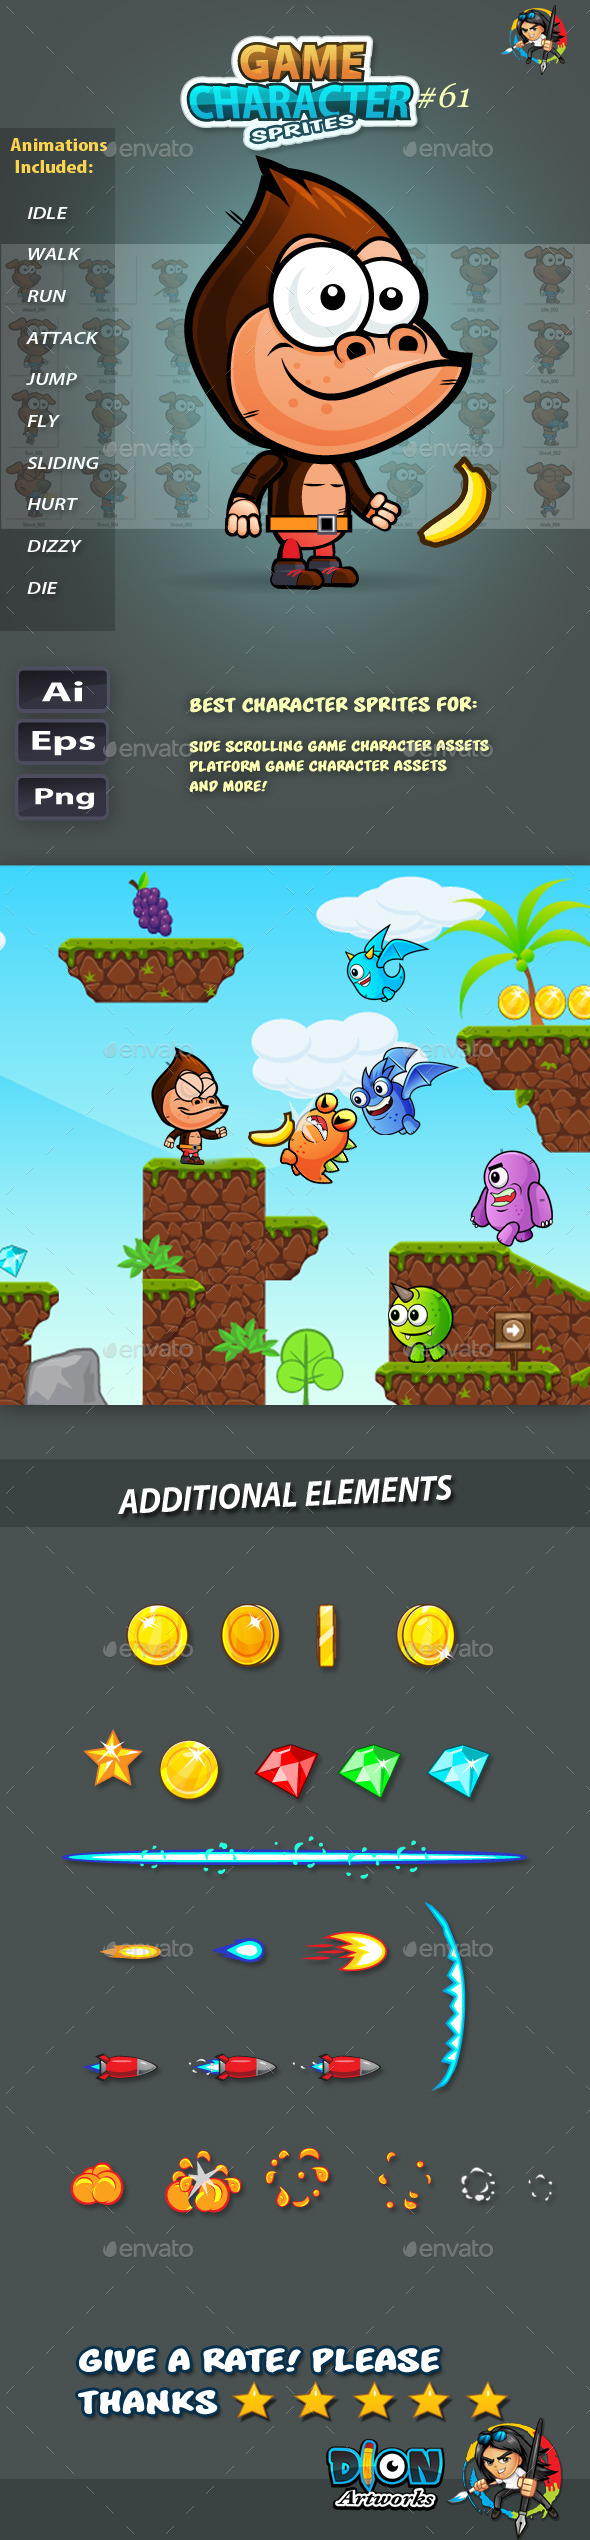 GraphicRiver Gorilla 2D Game Character Sprites 61 11834065